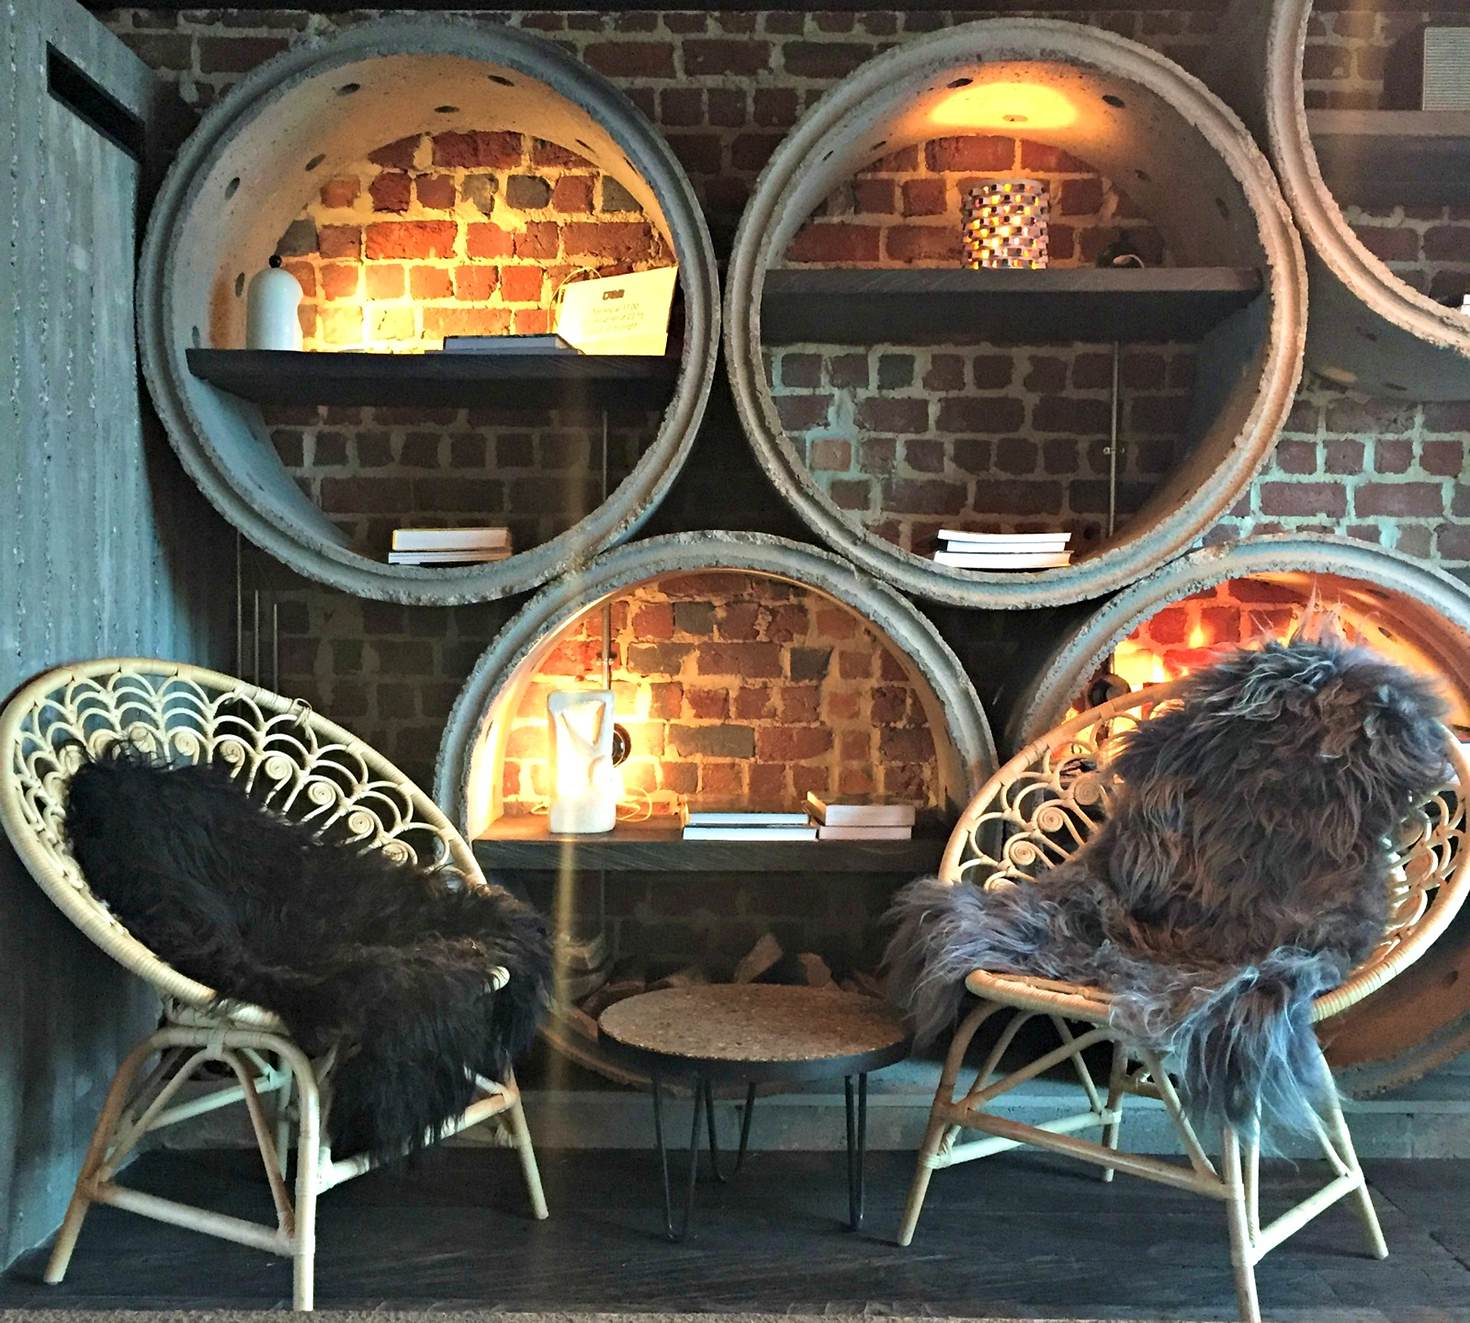 The Jam Hotel welcomes non-guests to lunch © Analia Glogowski / Lonely Planet